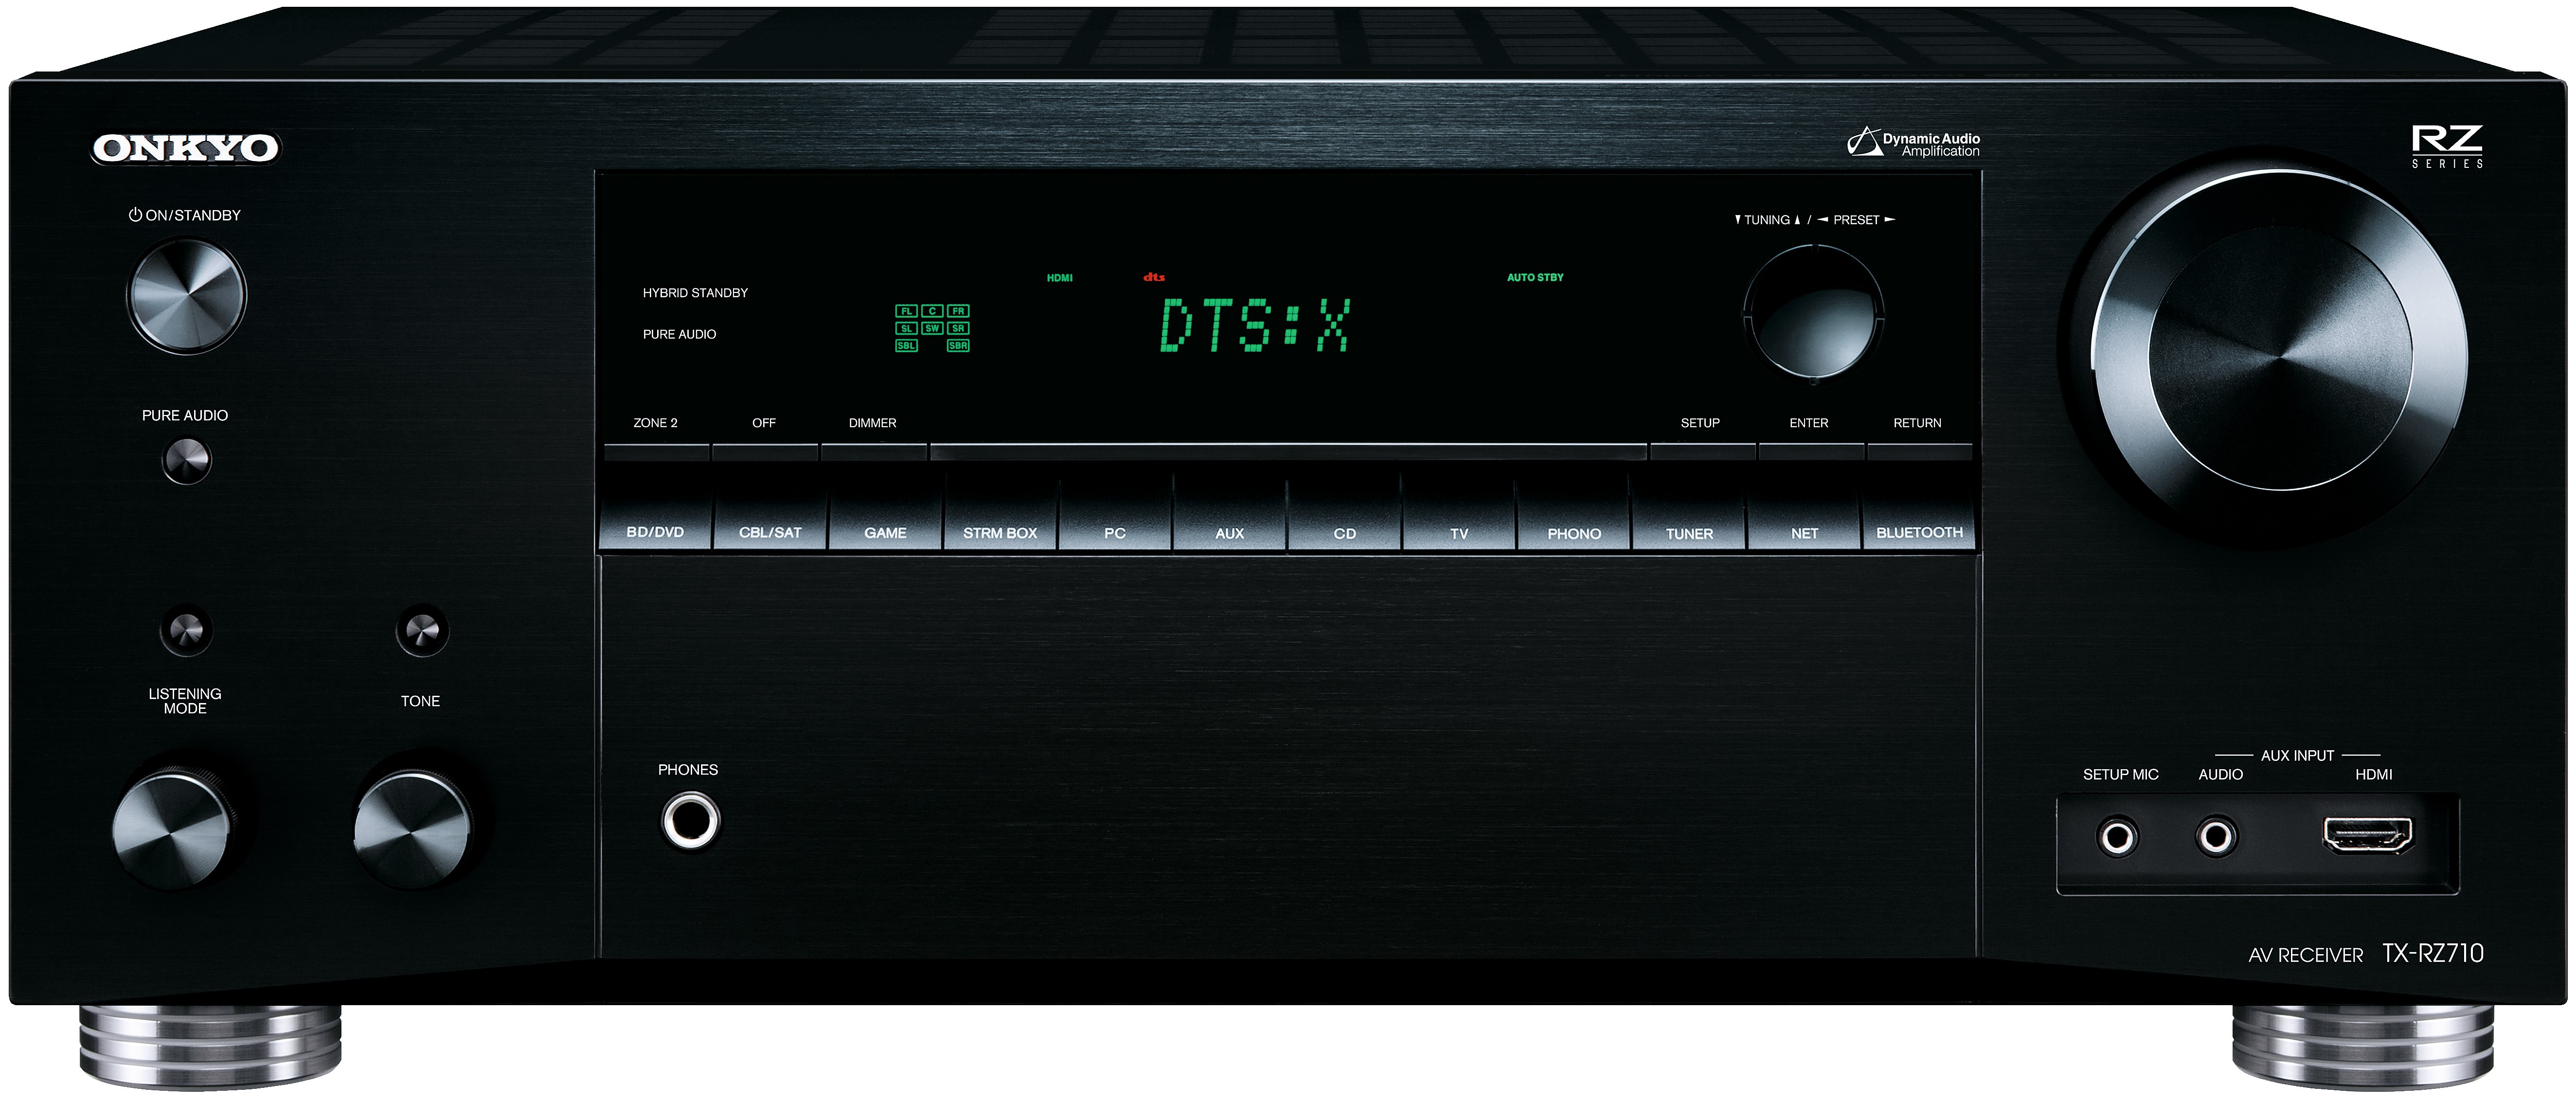 Onkyo TX-RZ710 vs Yamaha Aventage RX-A880 Review - Compare